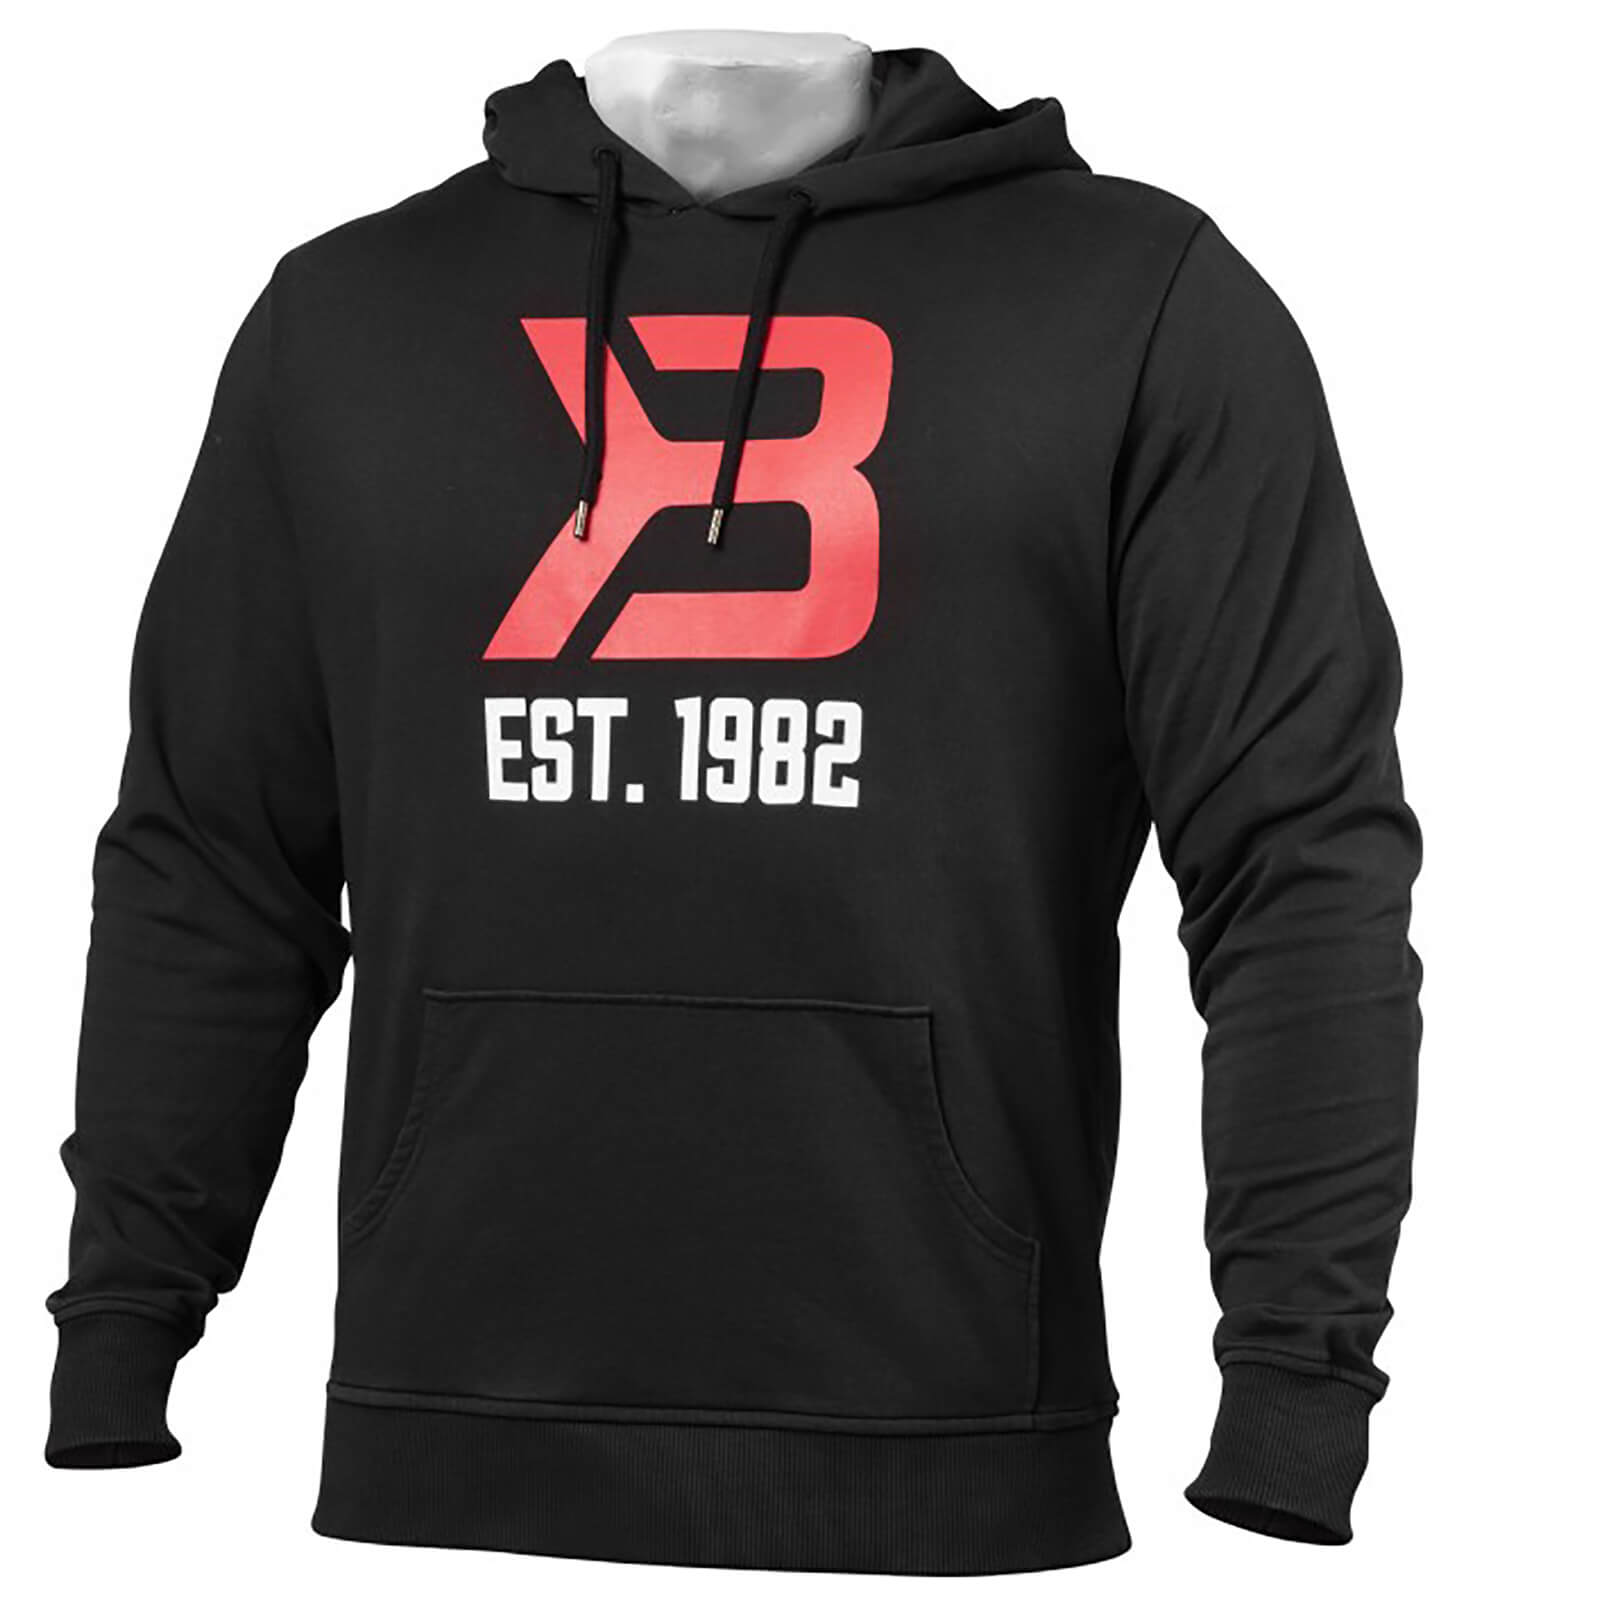 Better Bodies Gym Hoody - Black - S